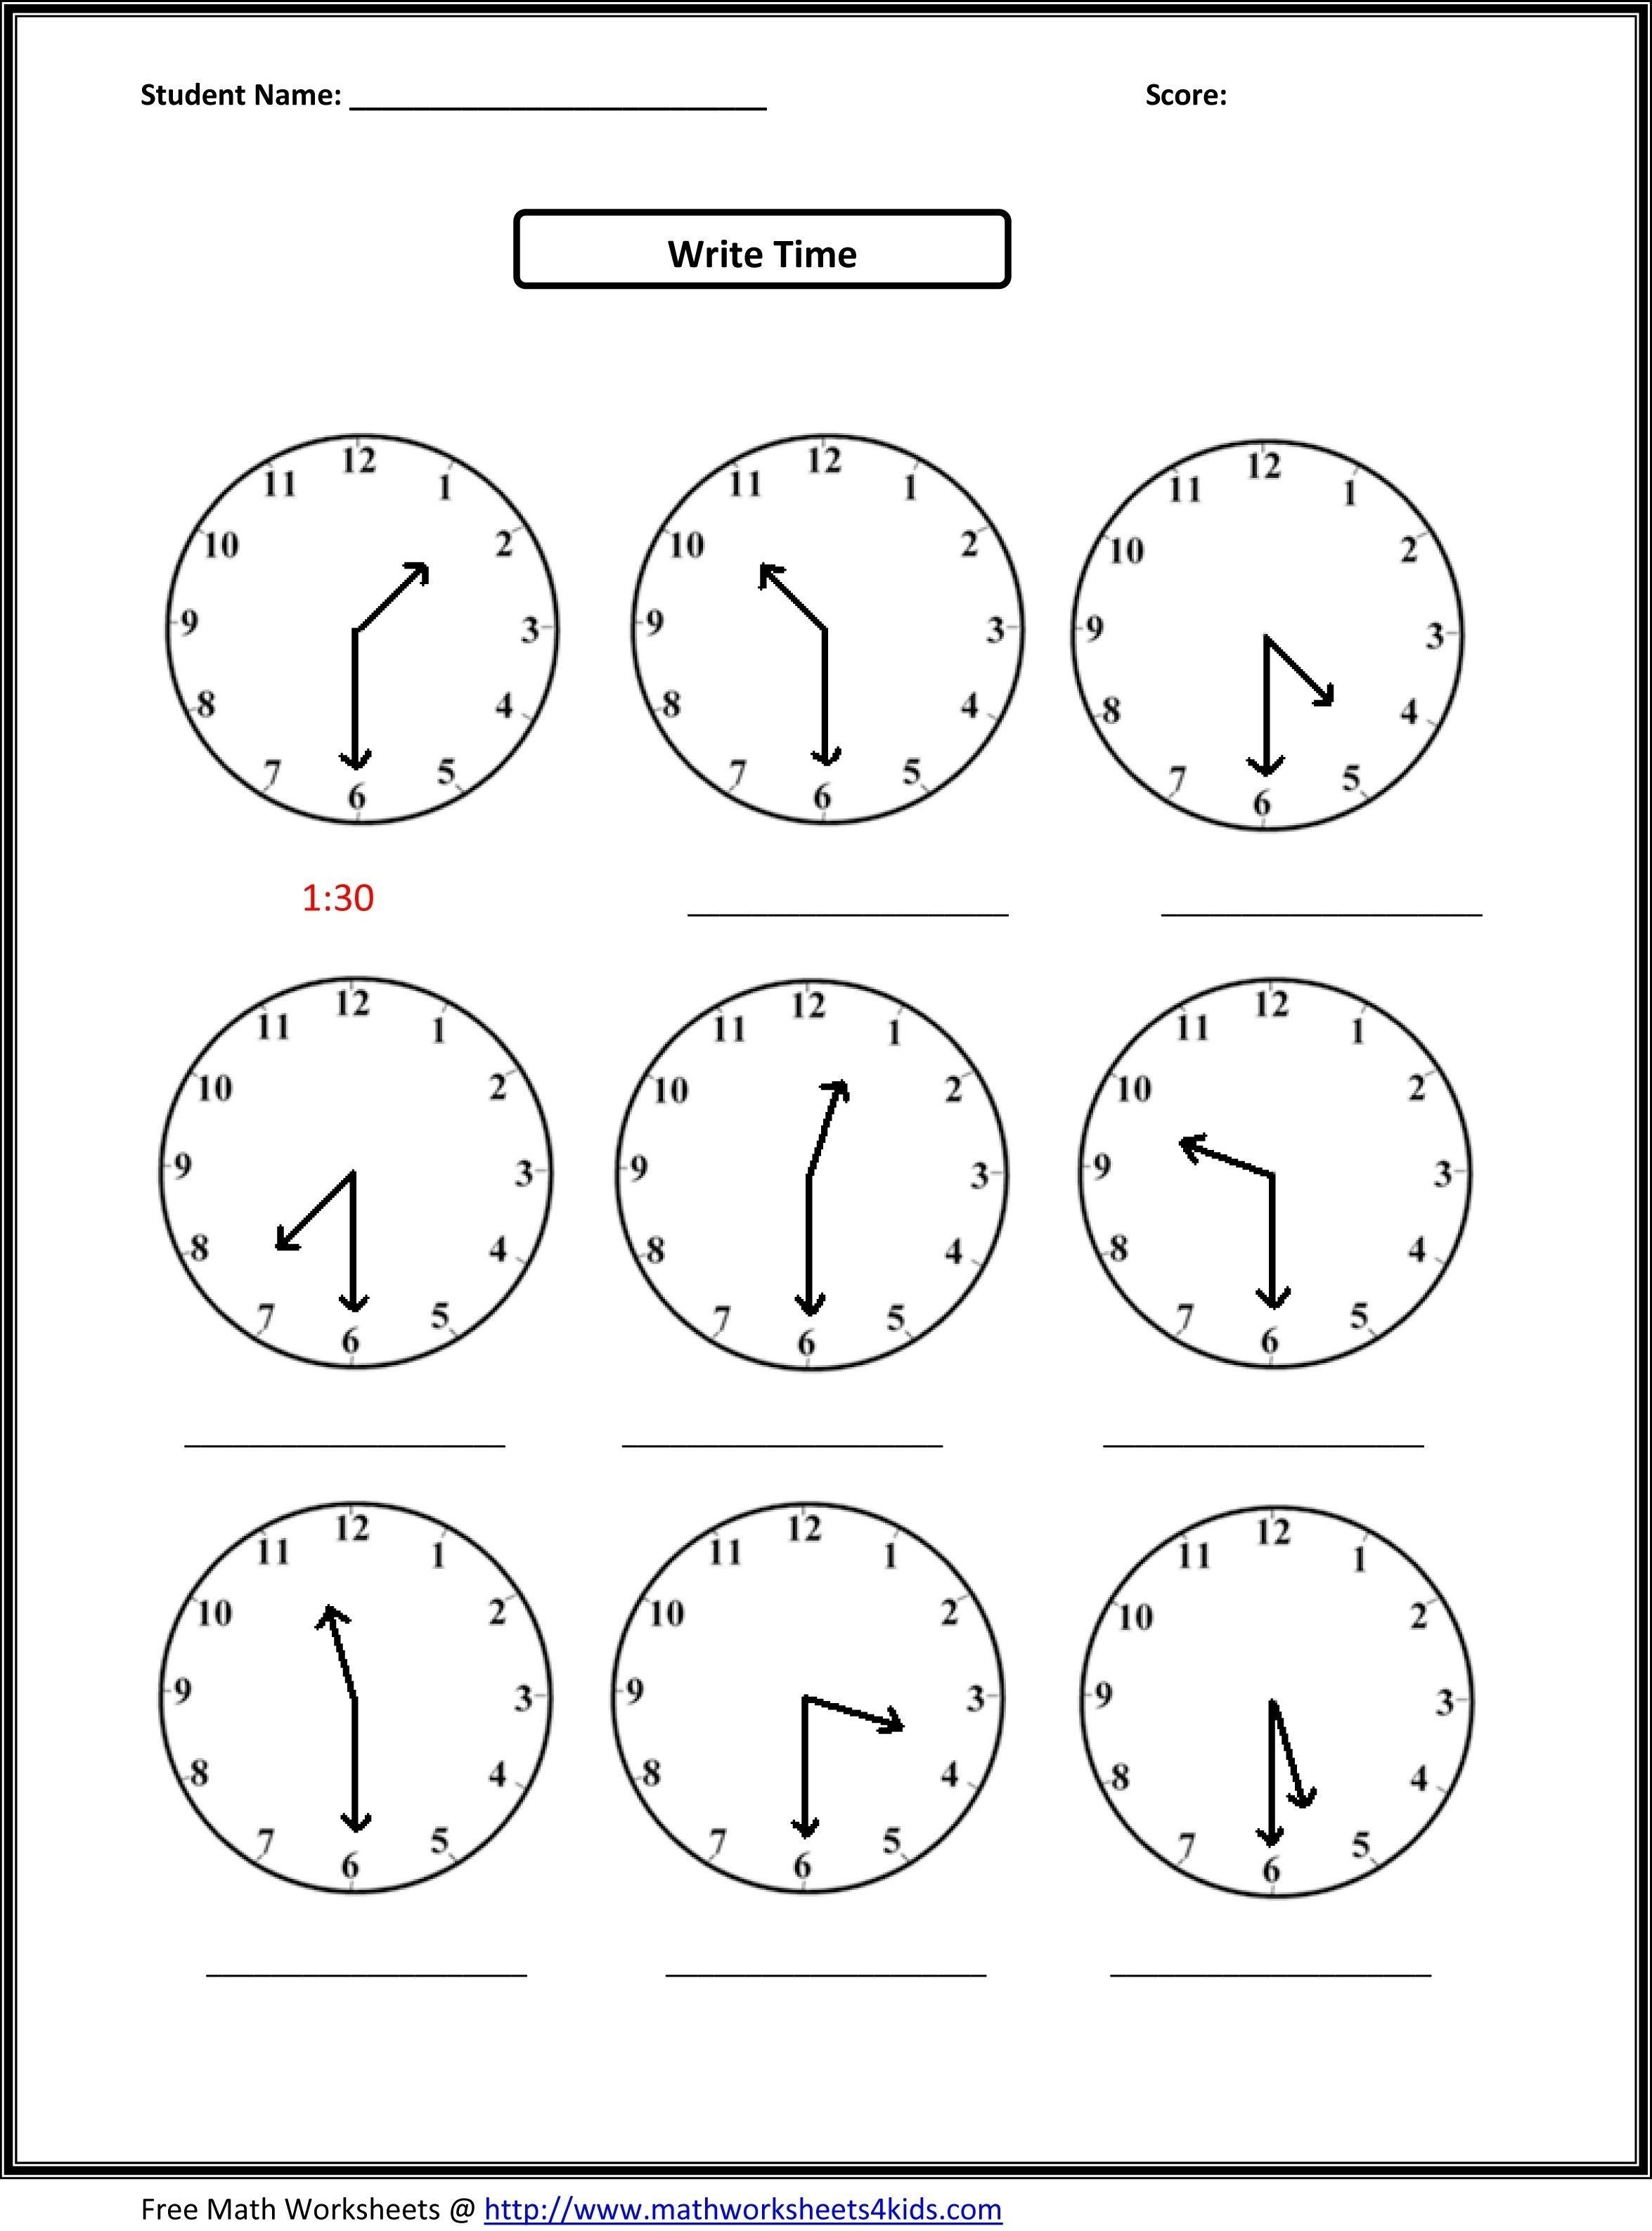 √ Telling Time Printable Worksheets First Grade Inspirationa - Free Printable Telling Time Worksheets For 1St Grade